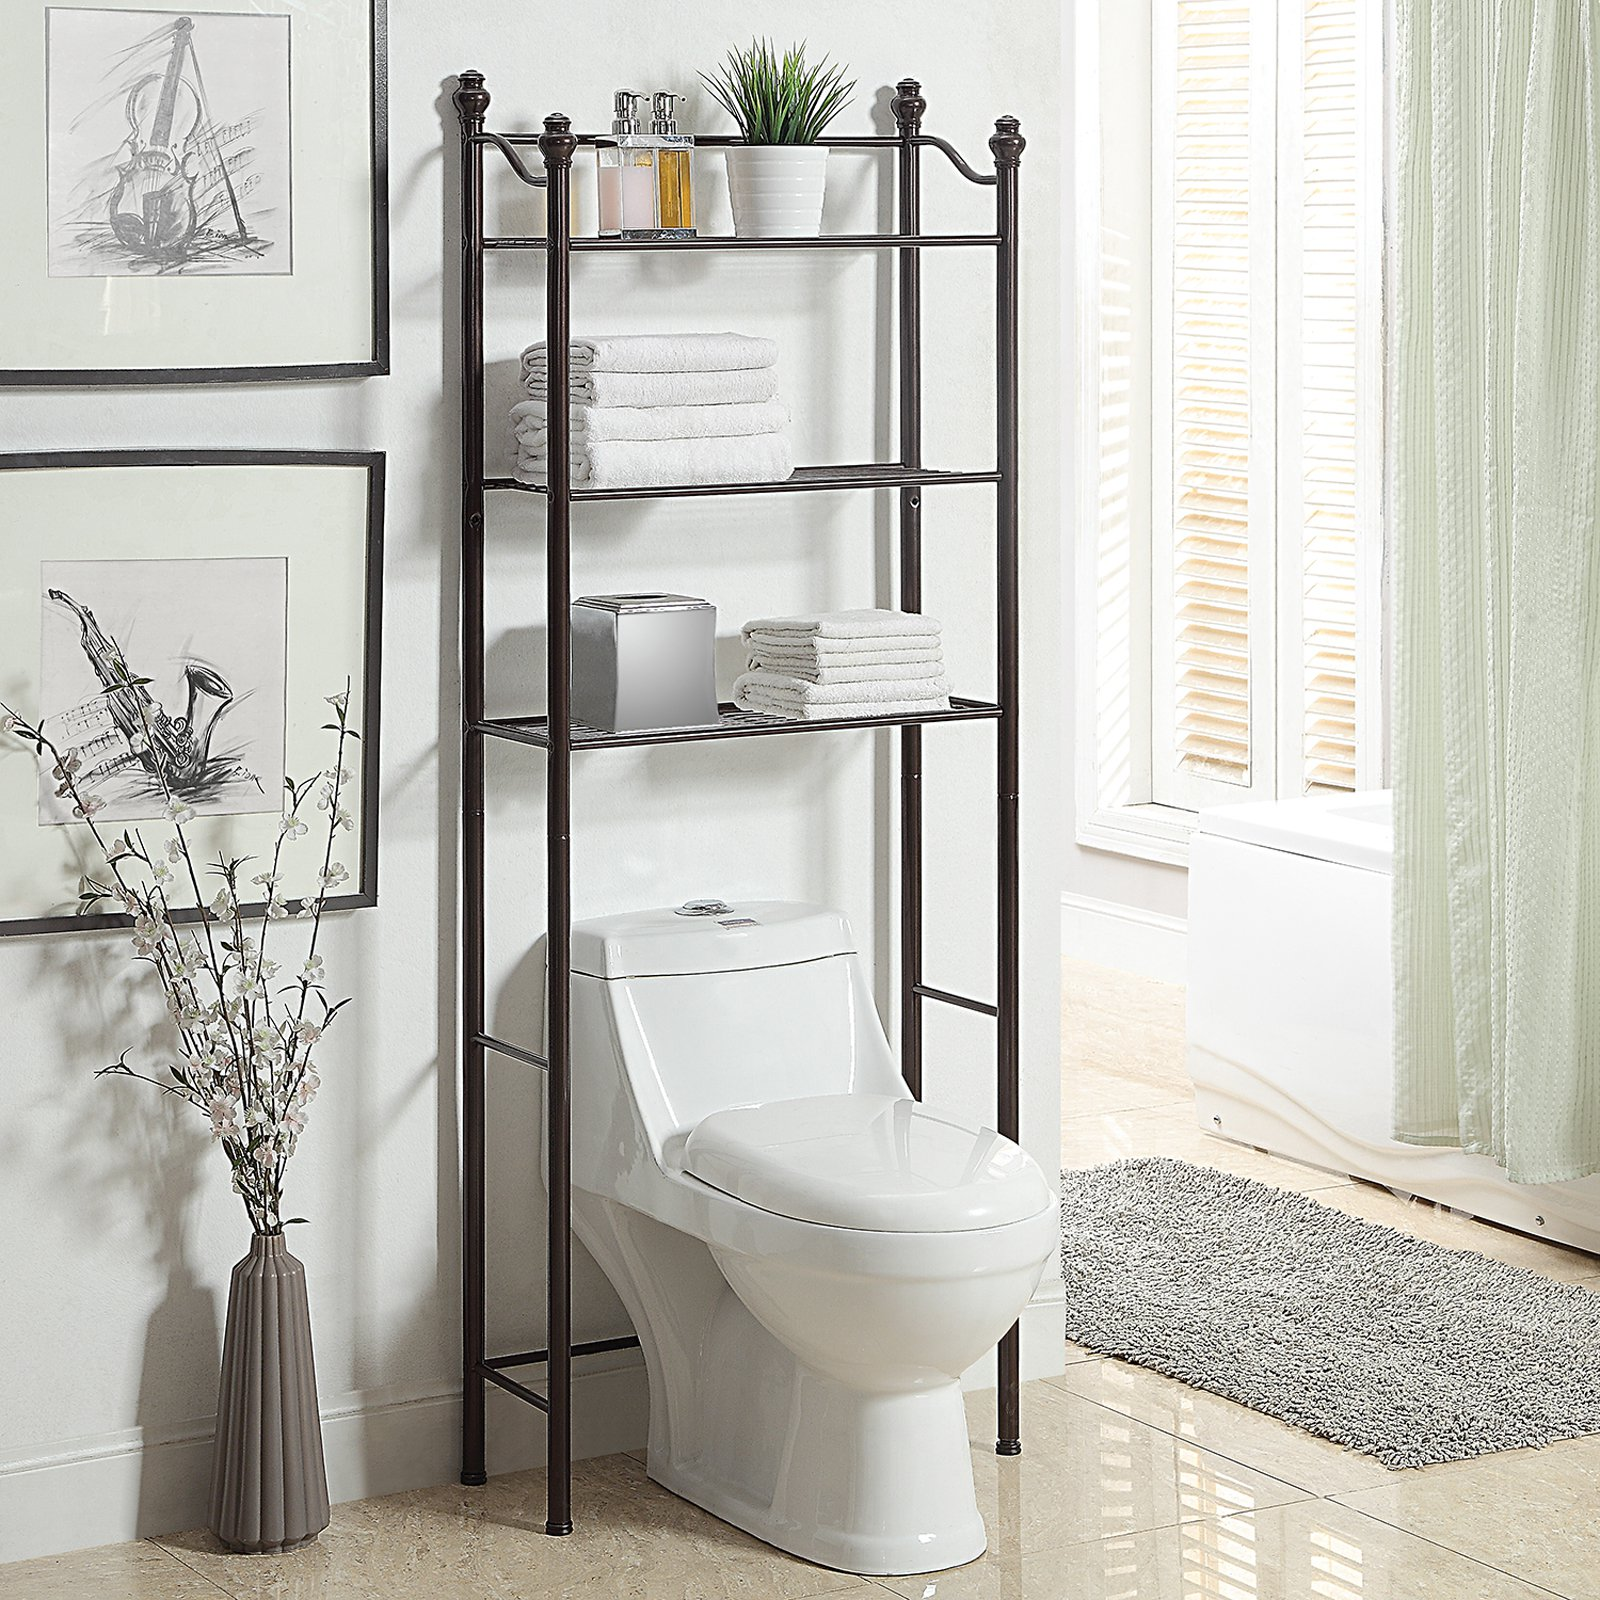 Organize It All Belgium 3-Shelf Over-the-Toilet Bathroom Space Saver